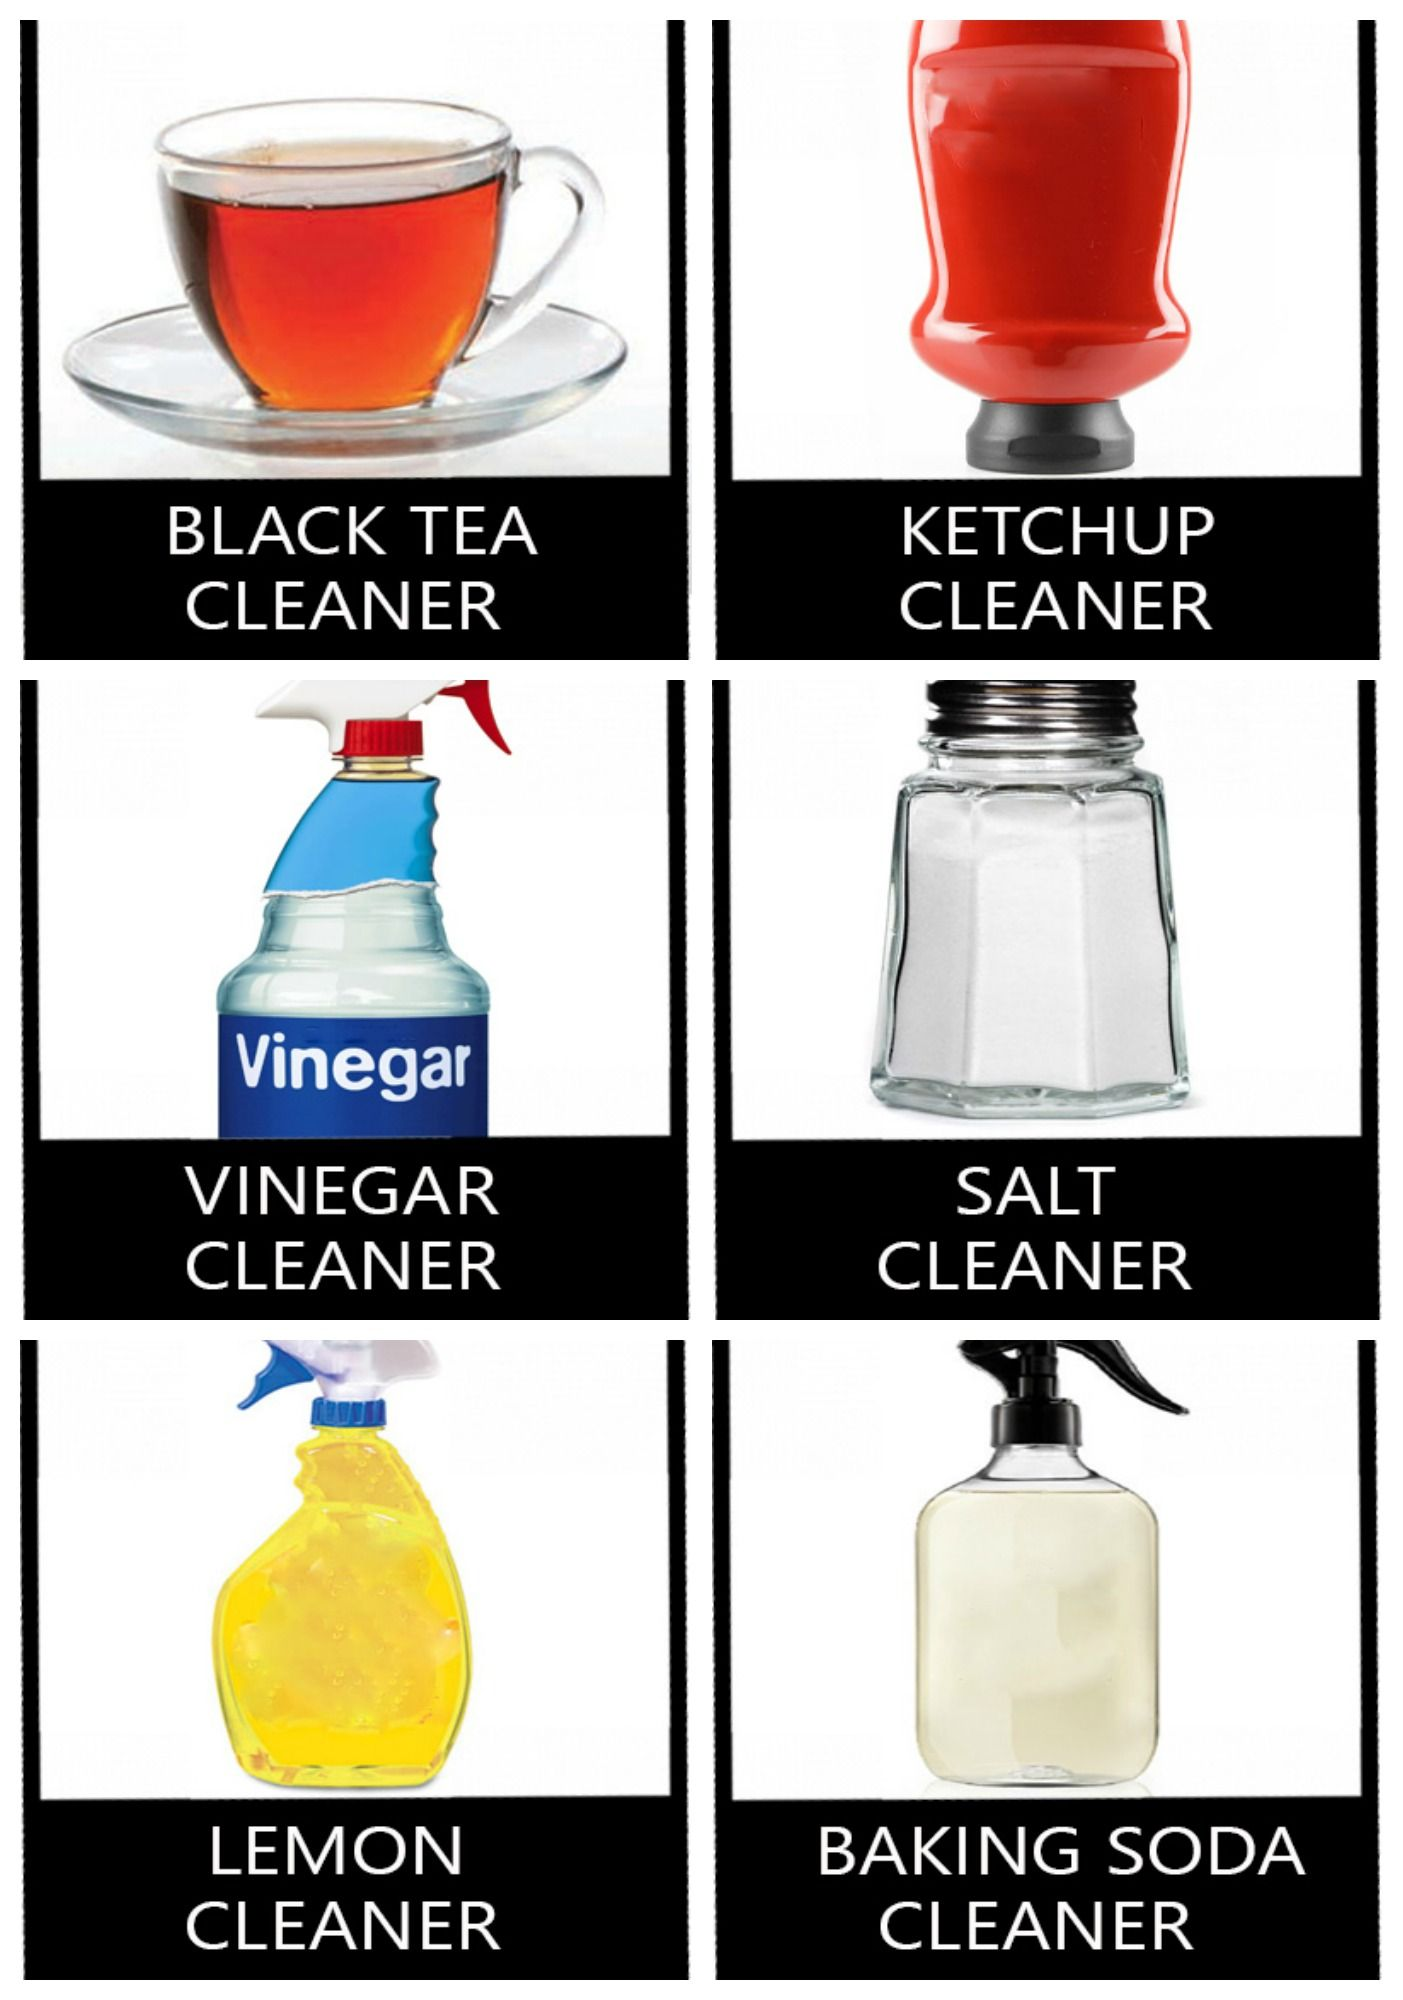 6 Foods That Are amazing Good Cleaners Laundry soap